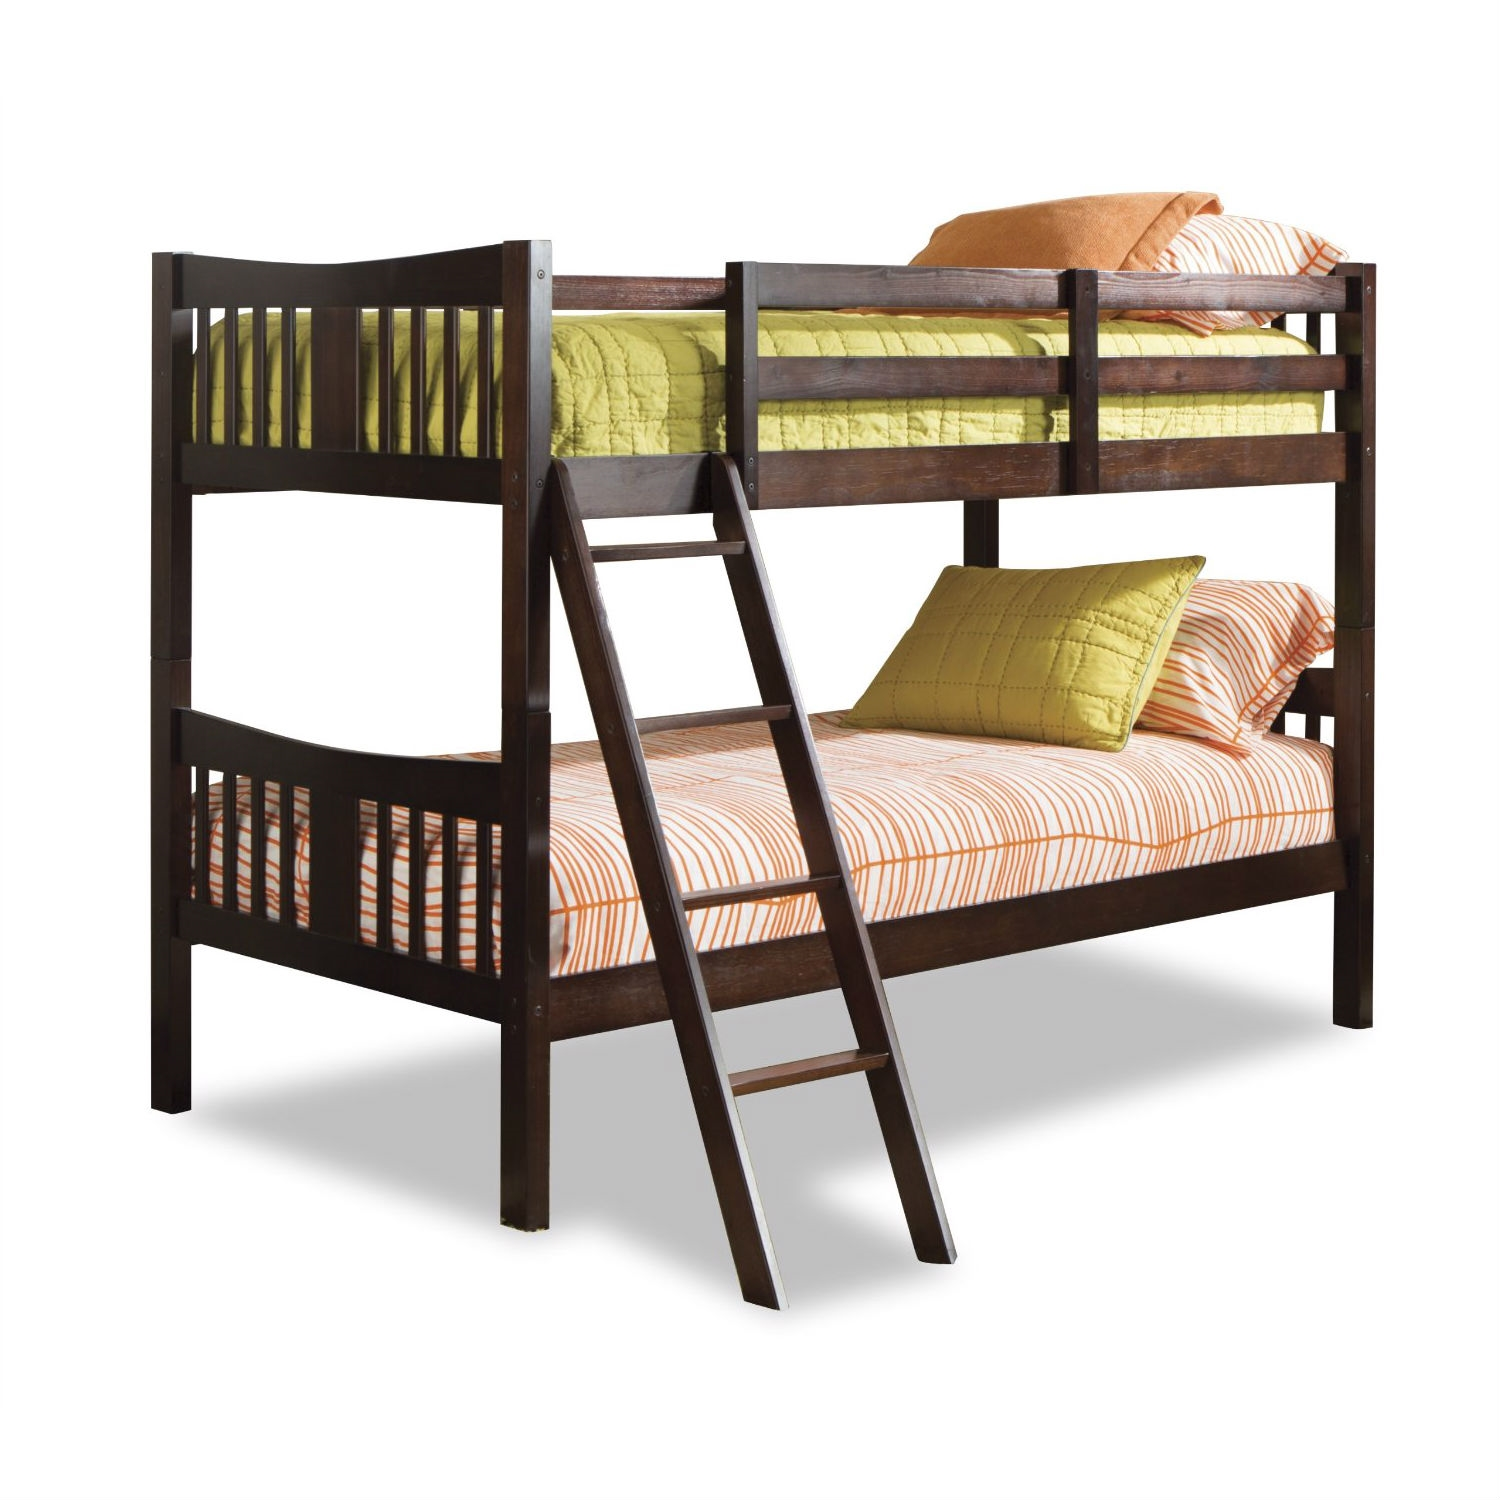 Solid Wood Bunk Bed In Espresso Finish